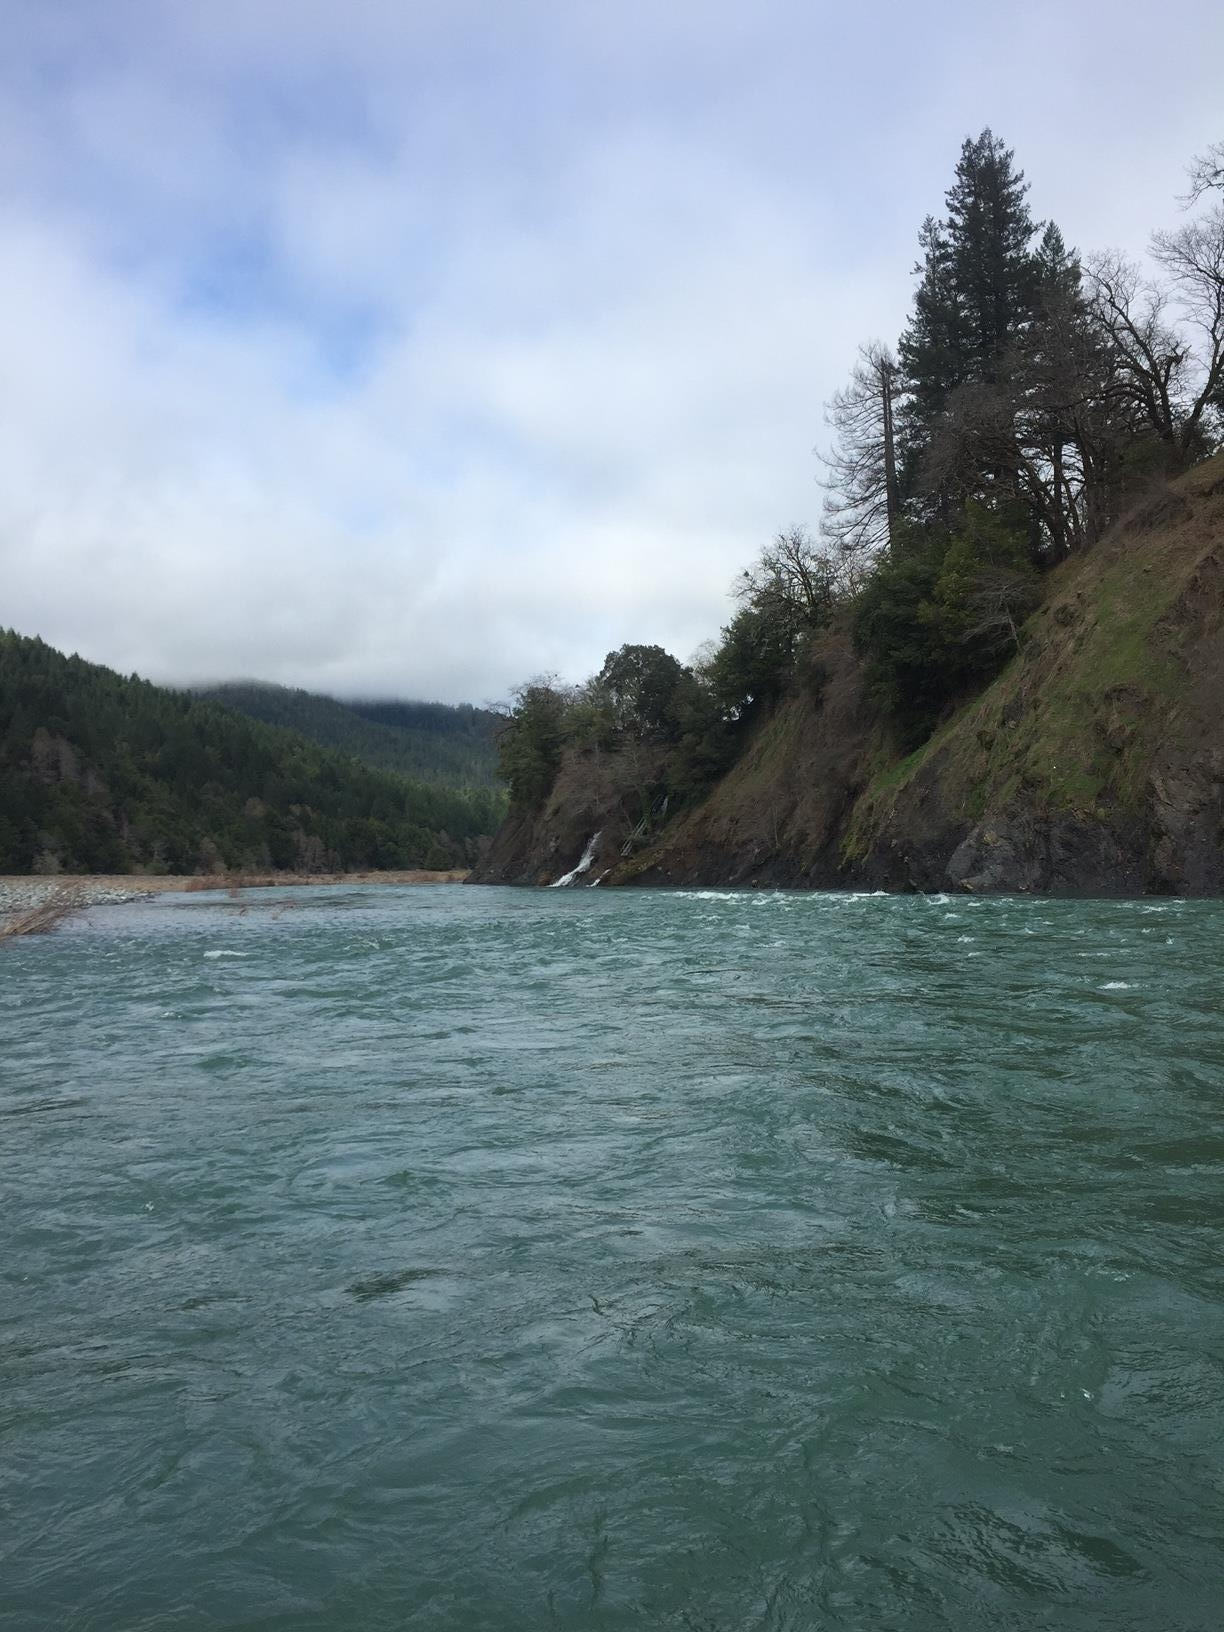 A costal Oregon river. Photography by Max Salzburg of Sonja K Photography.